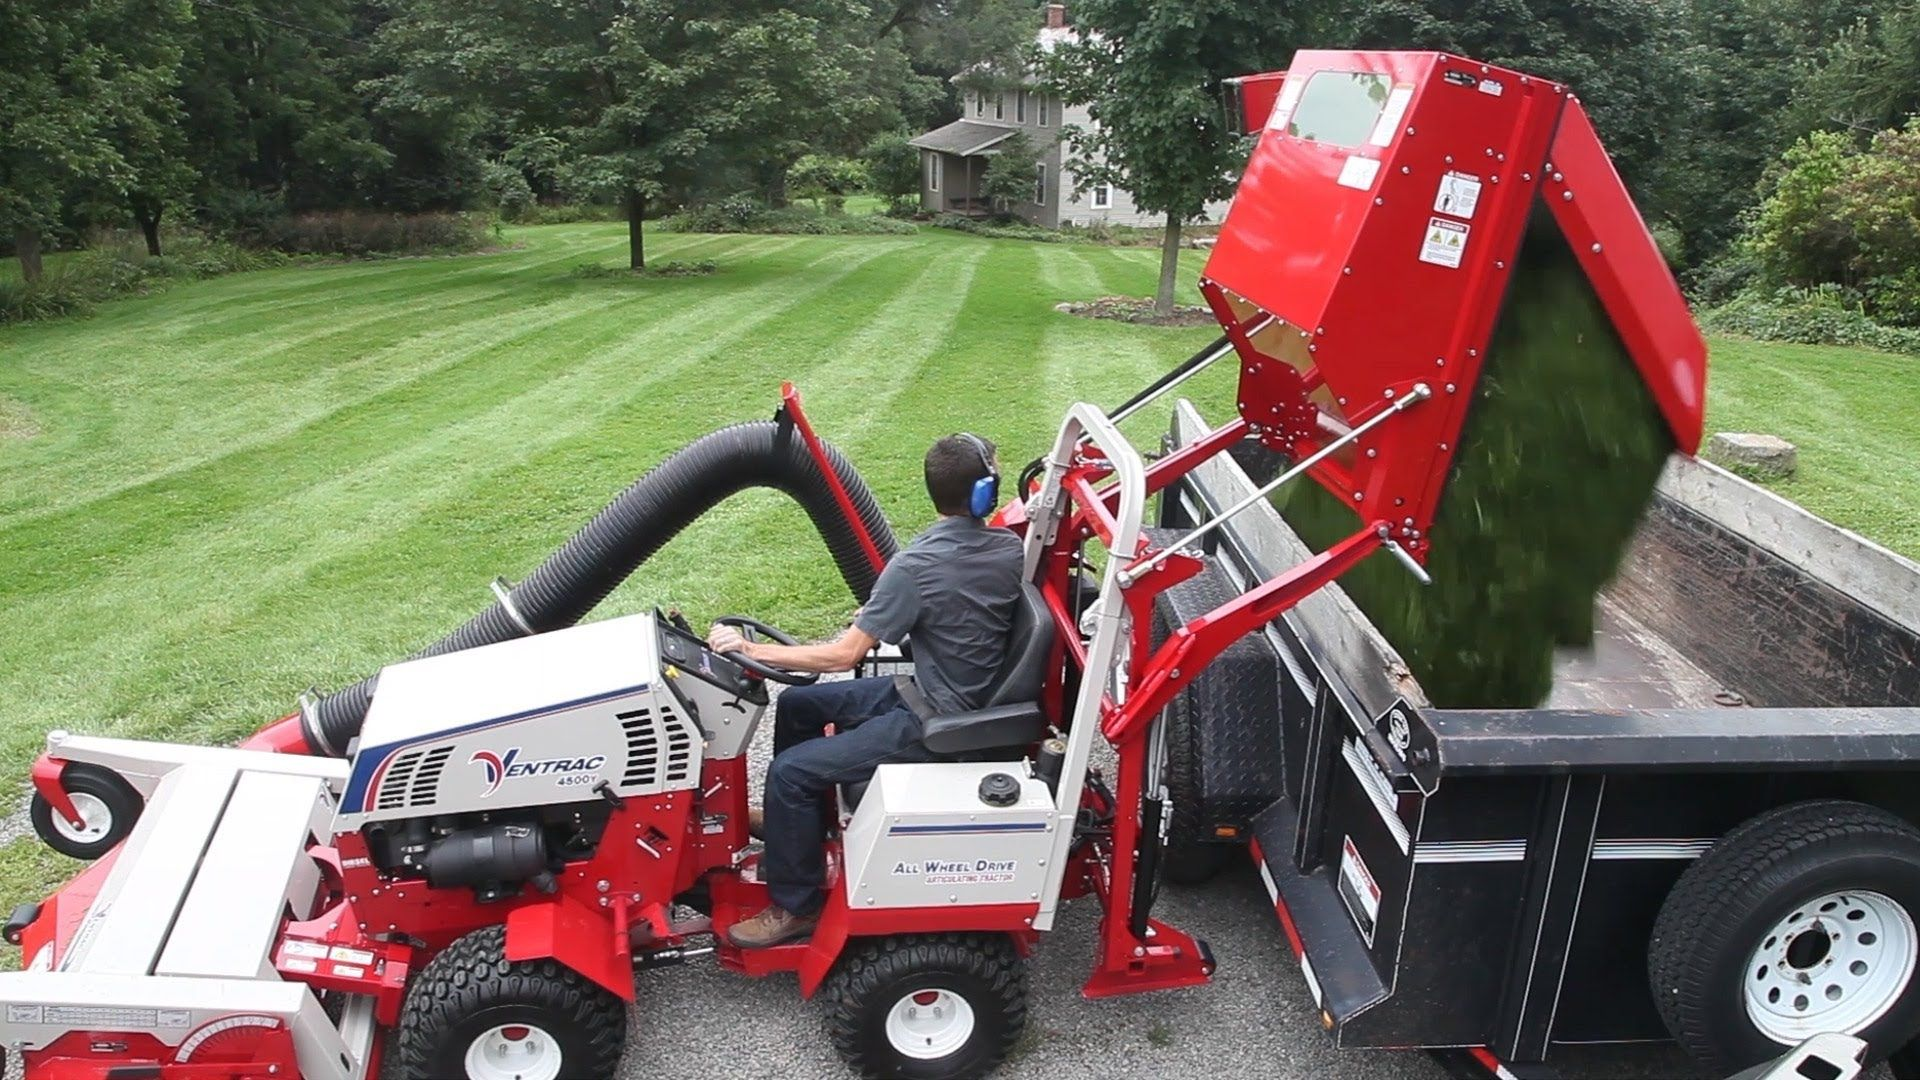 Pin by jacob thompson arnone on vent track mowers lawn